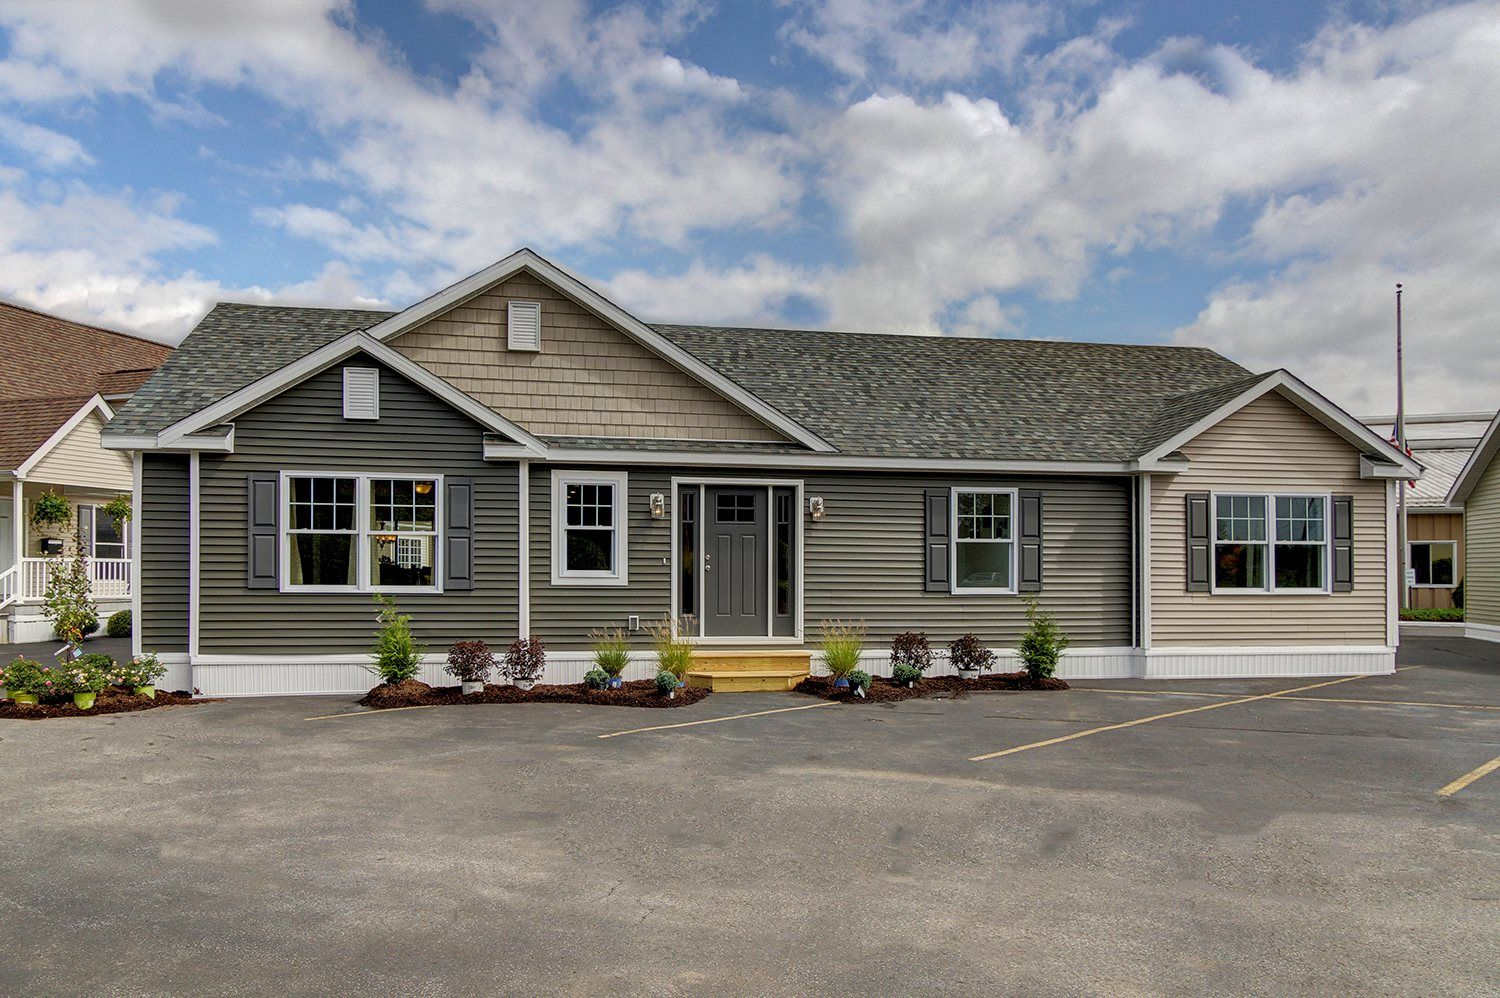 Sensational Strictly Manufactured Homes Champion Homes Red Bluff Home Download Free Architecture Designs Xaembritishbridgeorg